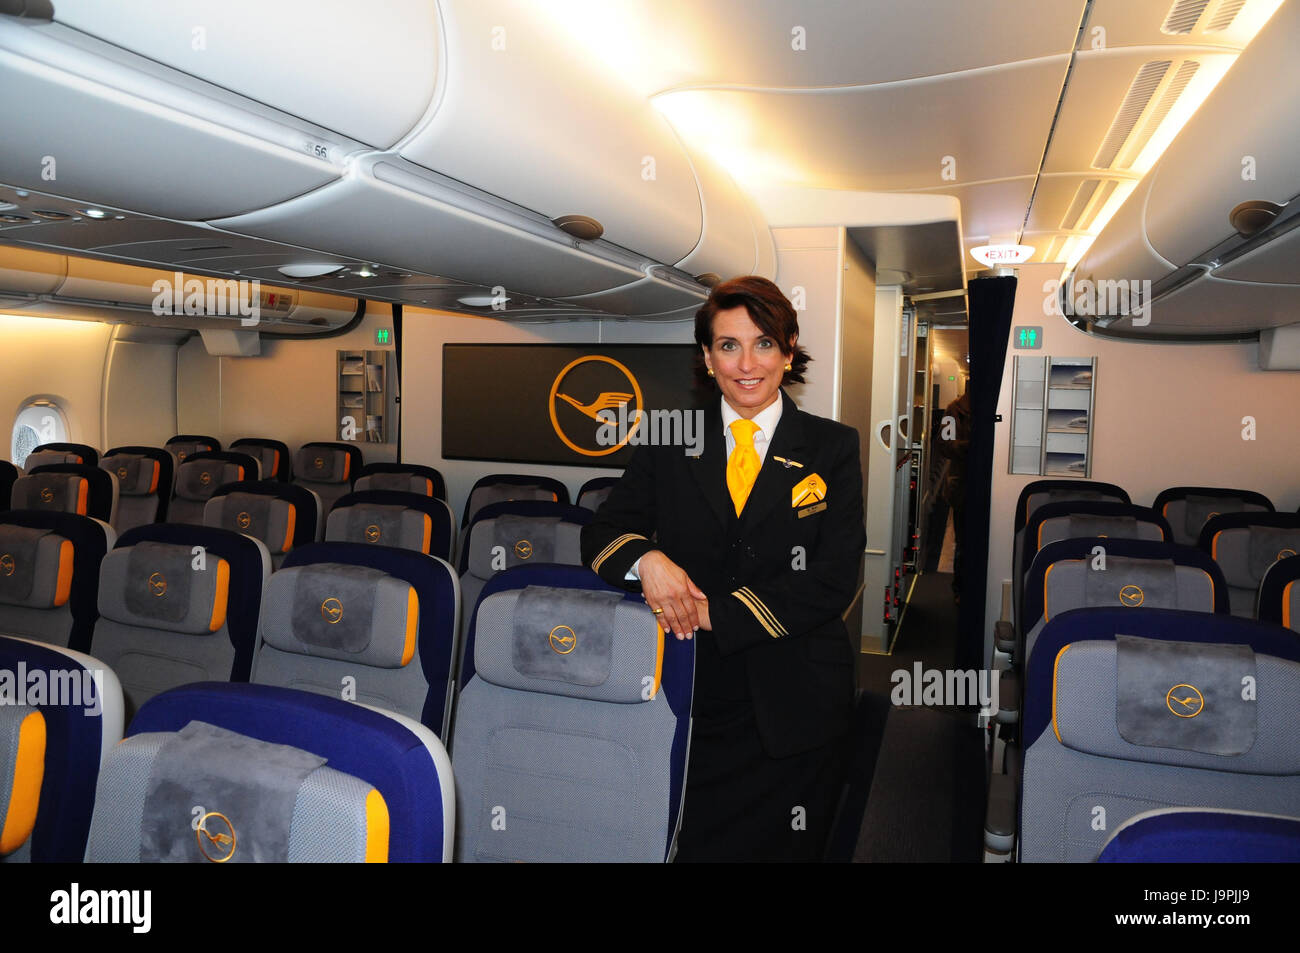 Airplane,inside,seats,flight attendant,air liner,seats,places,lighting,travel,vacation,people,stewardess,stand,smile,uniform,occupation,Lufthansa, - Stock Image